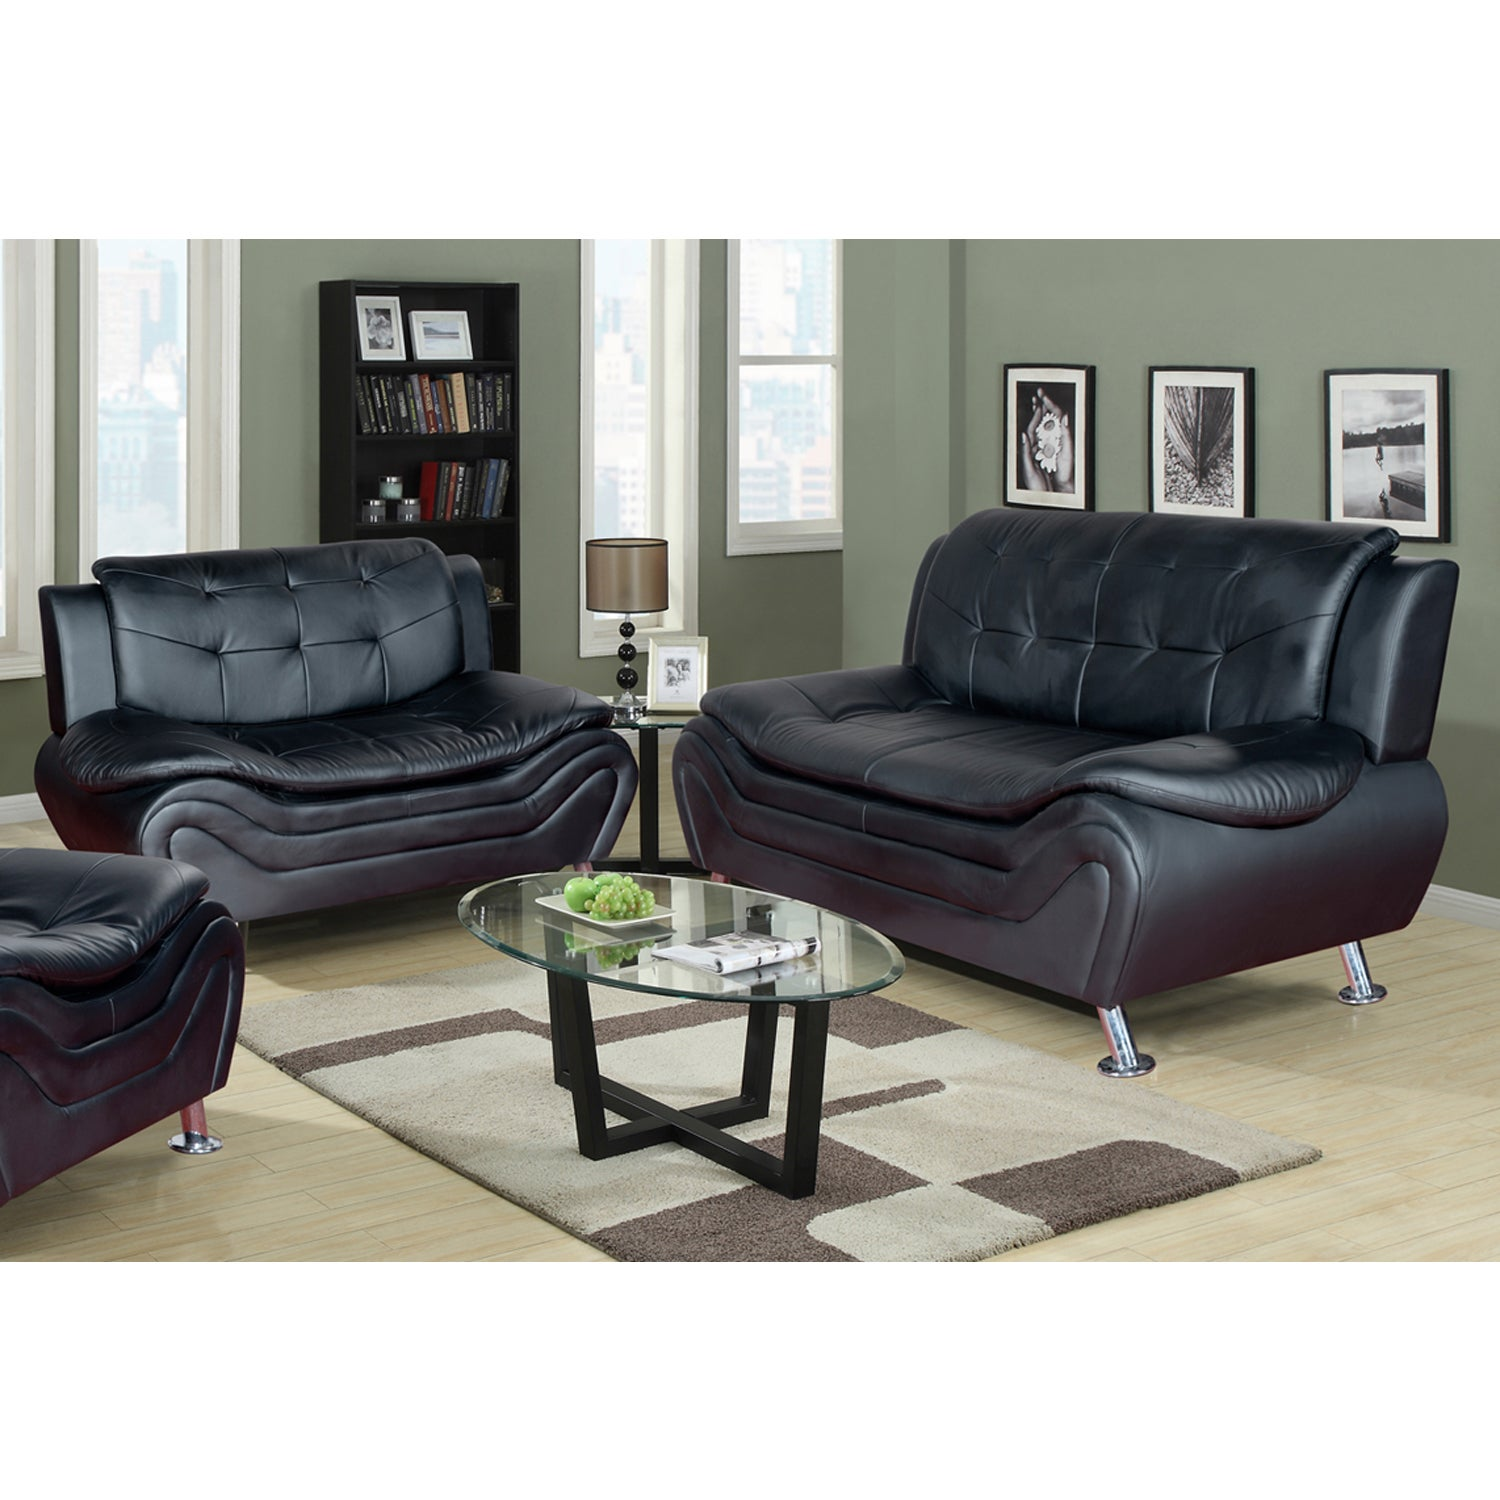 Ethel Contemporary Modern Black Faux Leather Living Room Sofa Set Free Shipping Today 12980817